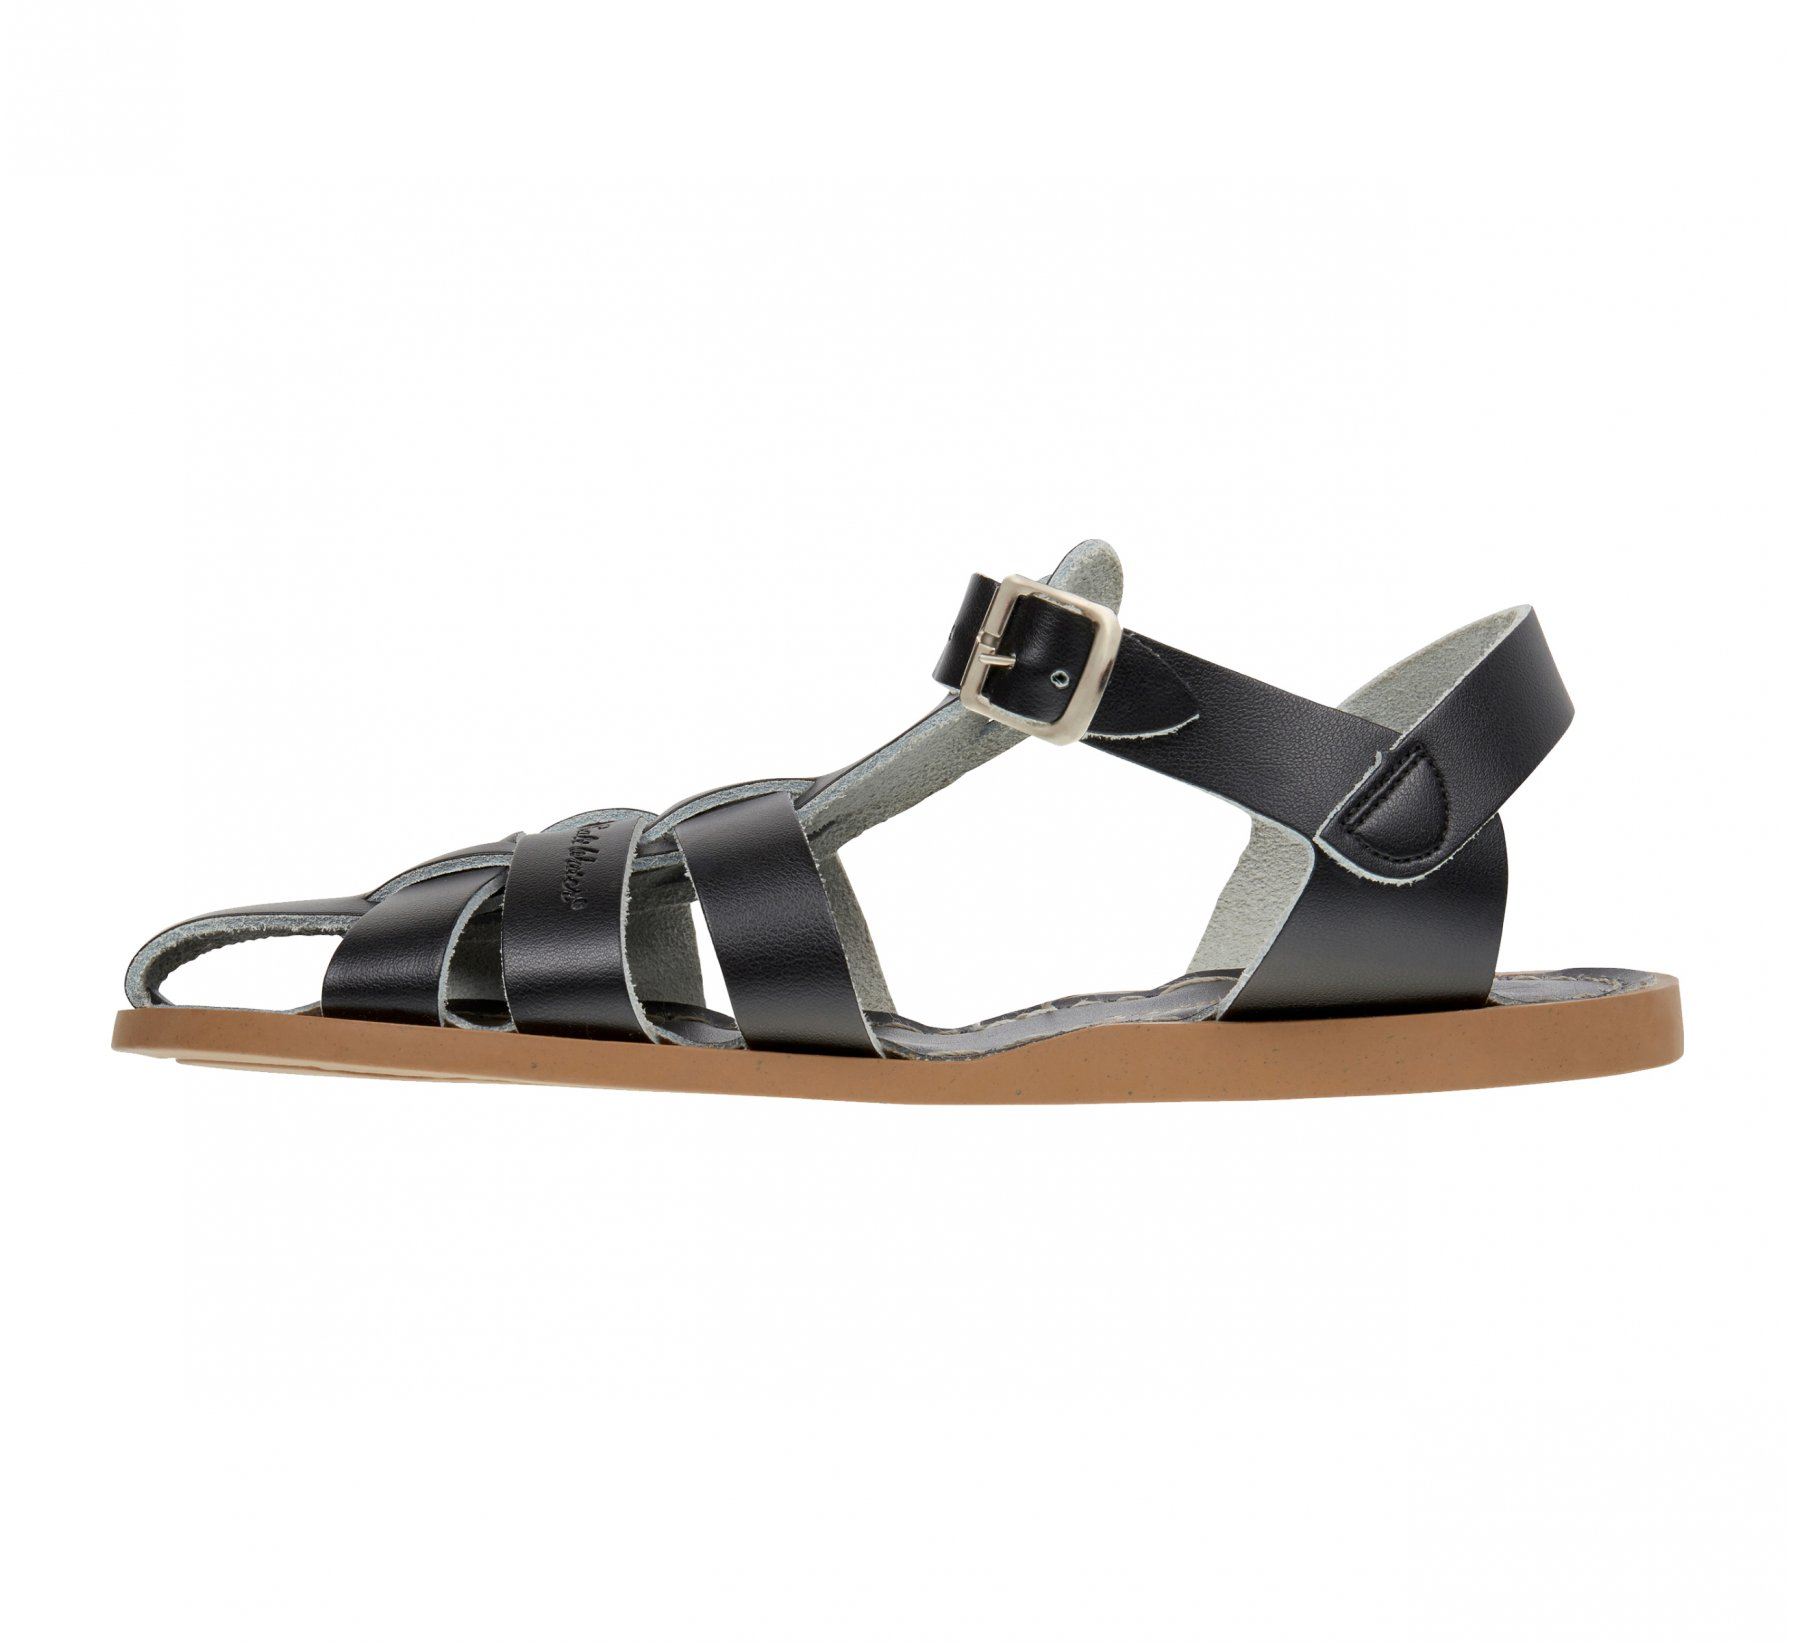 Shark Original Black - Salt Water Sandals